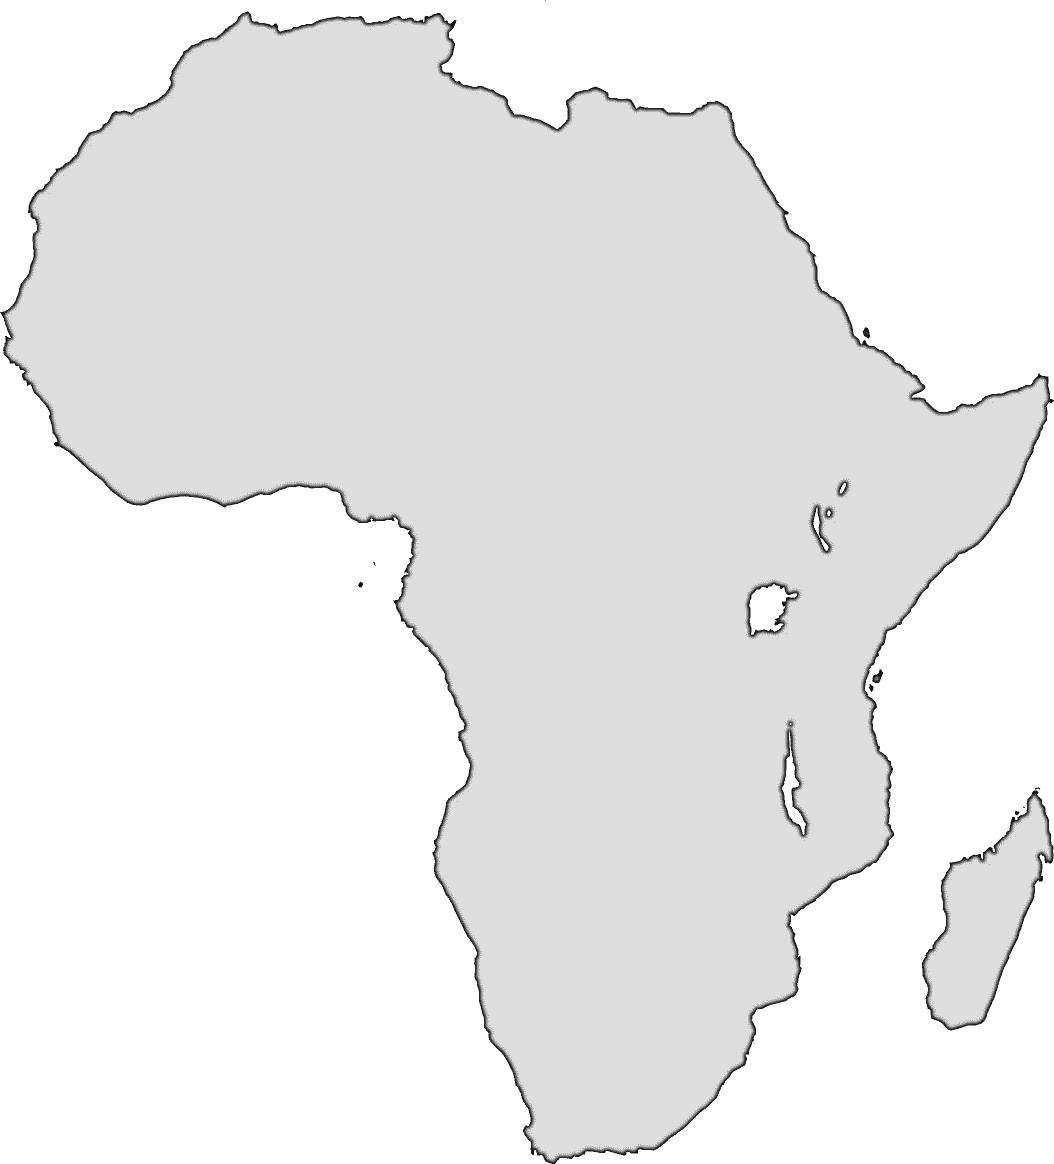 Africa-large-BW.png